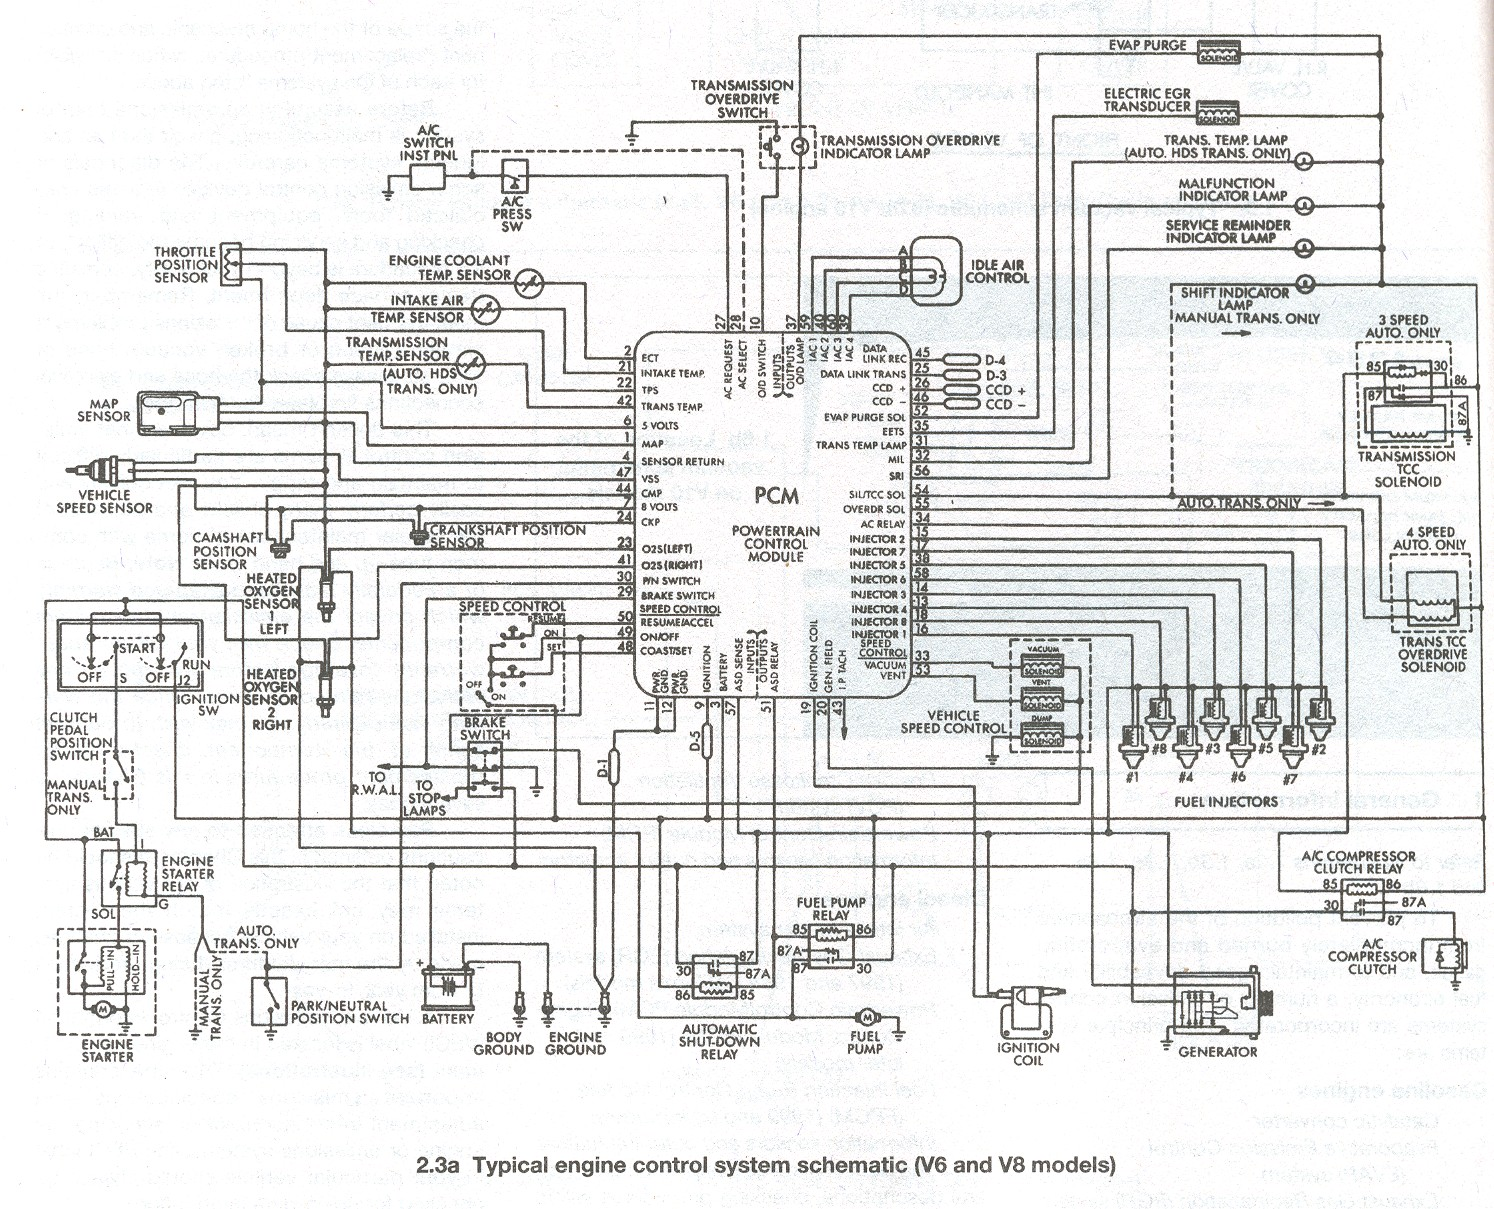 Need 1973 Duster Wiring Diagrams Please!